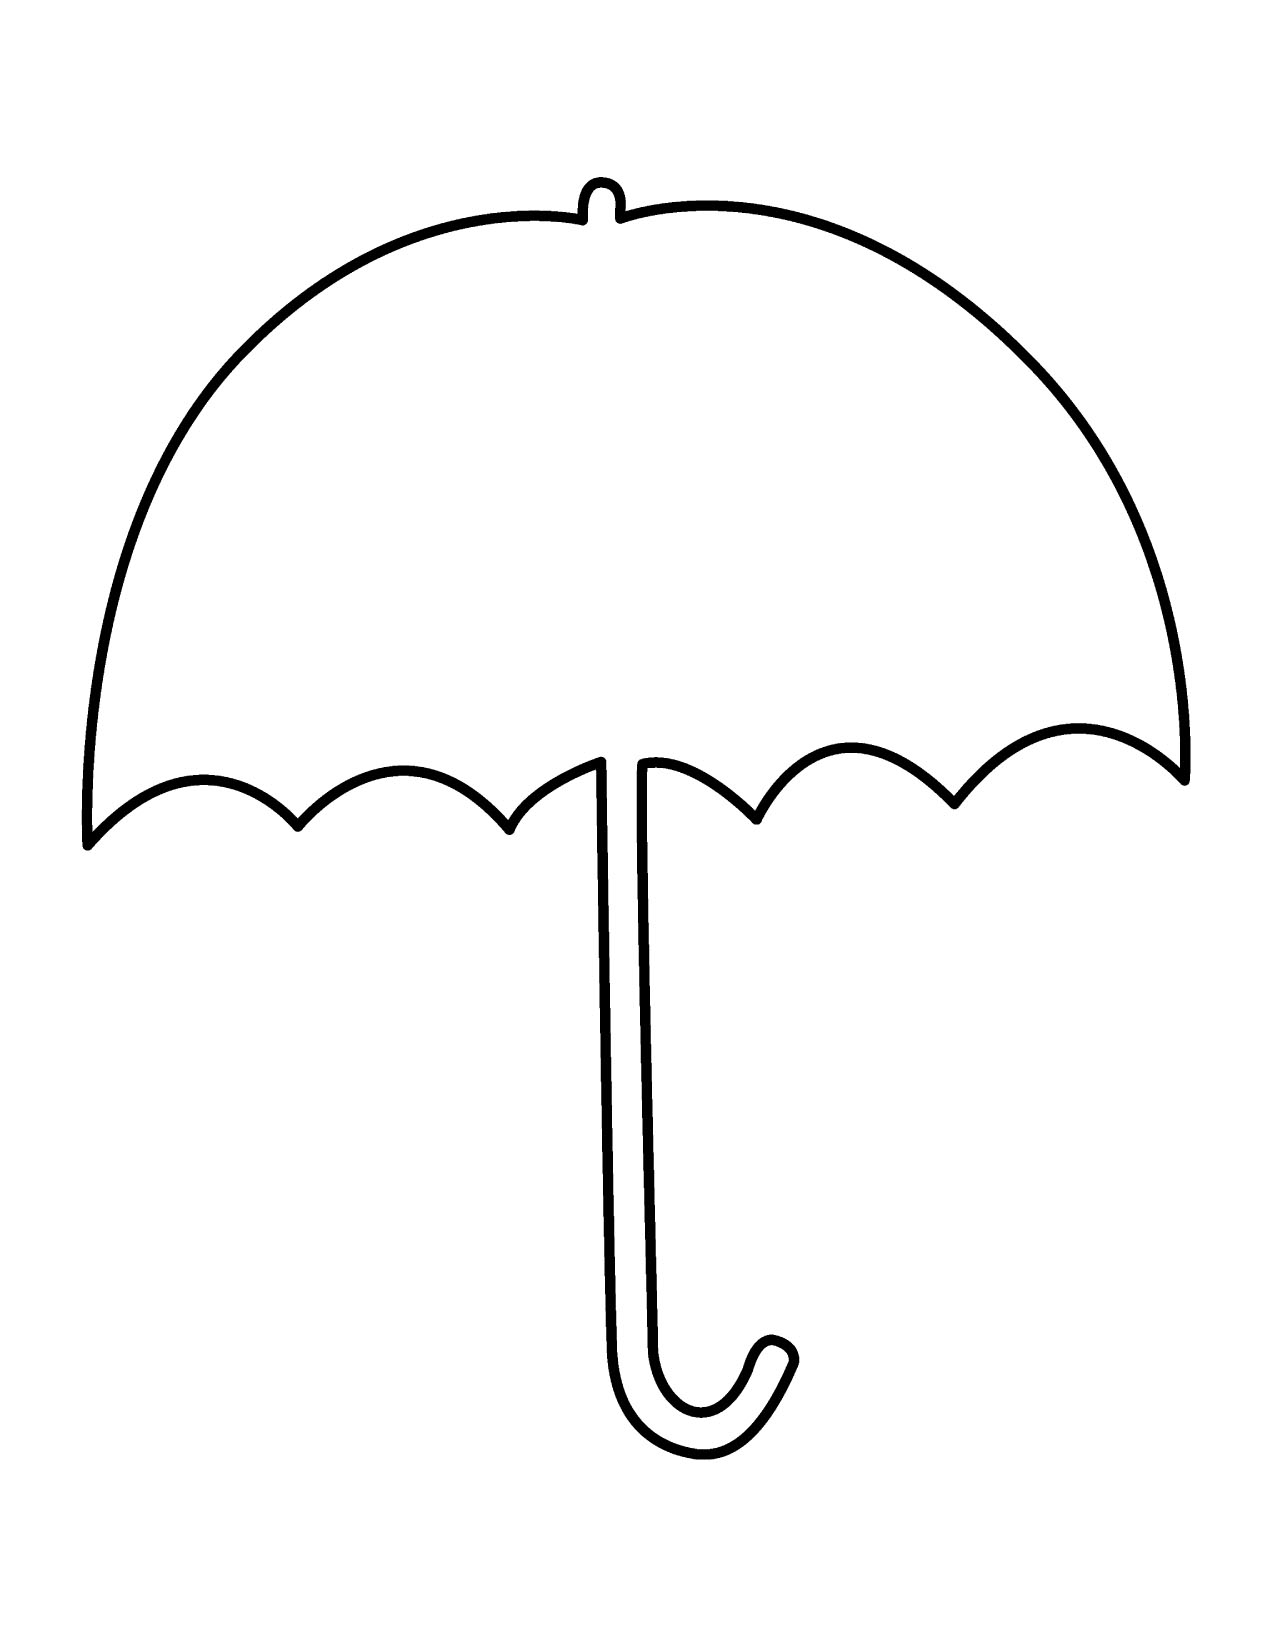 Colouring Worksheet Of Umbrella